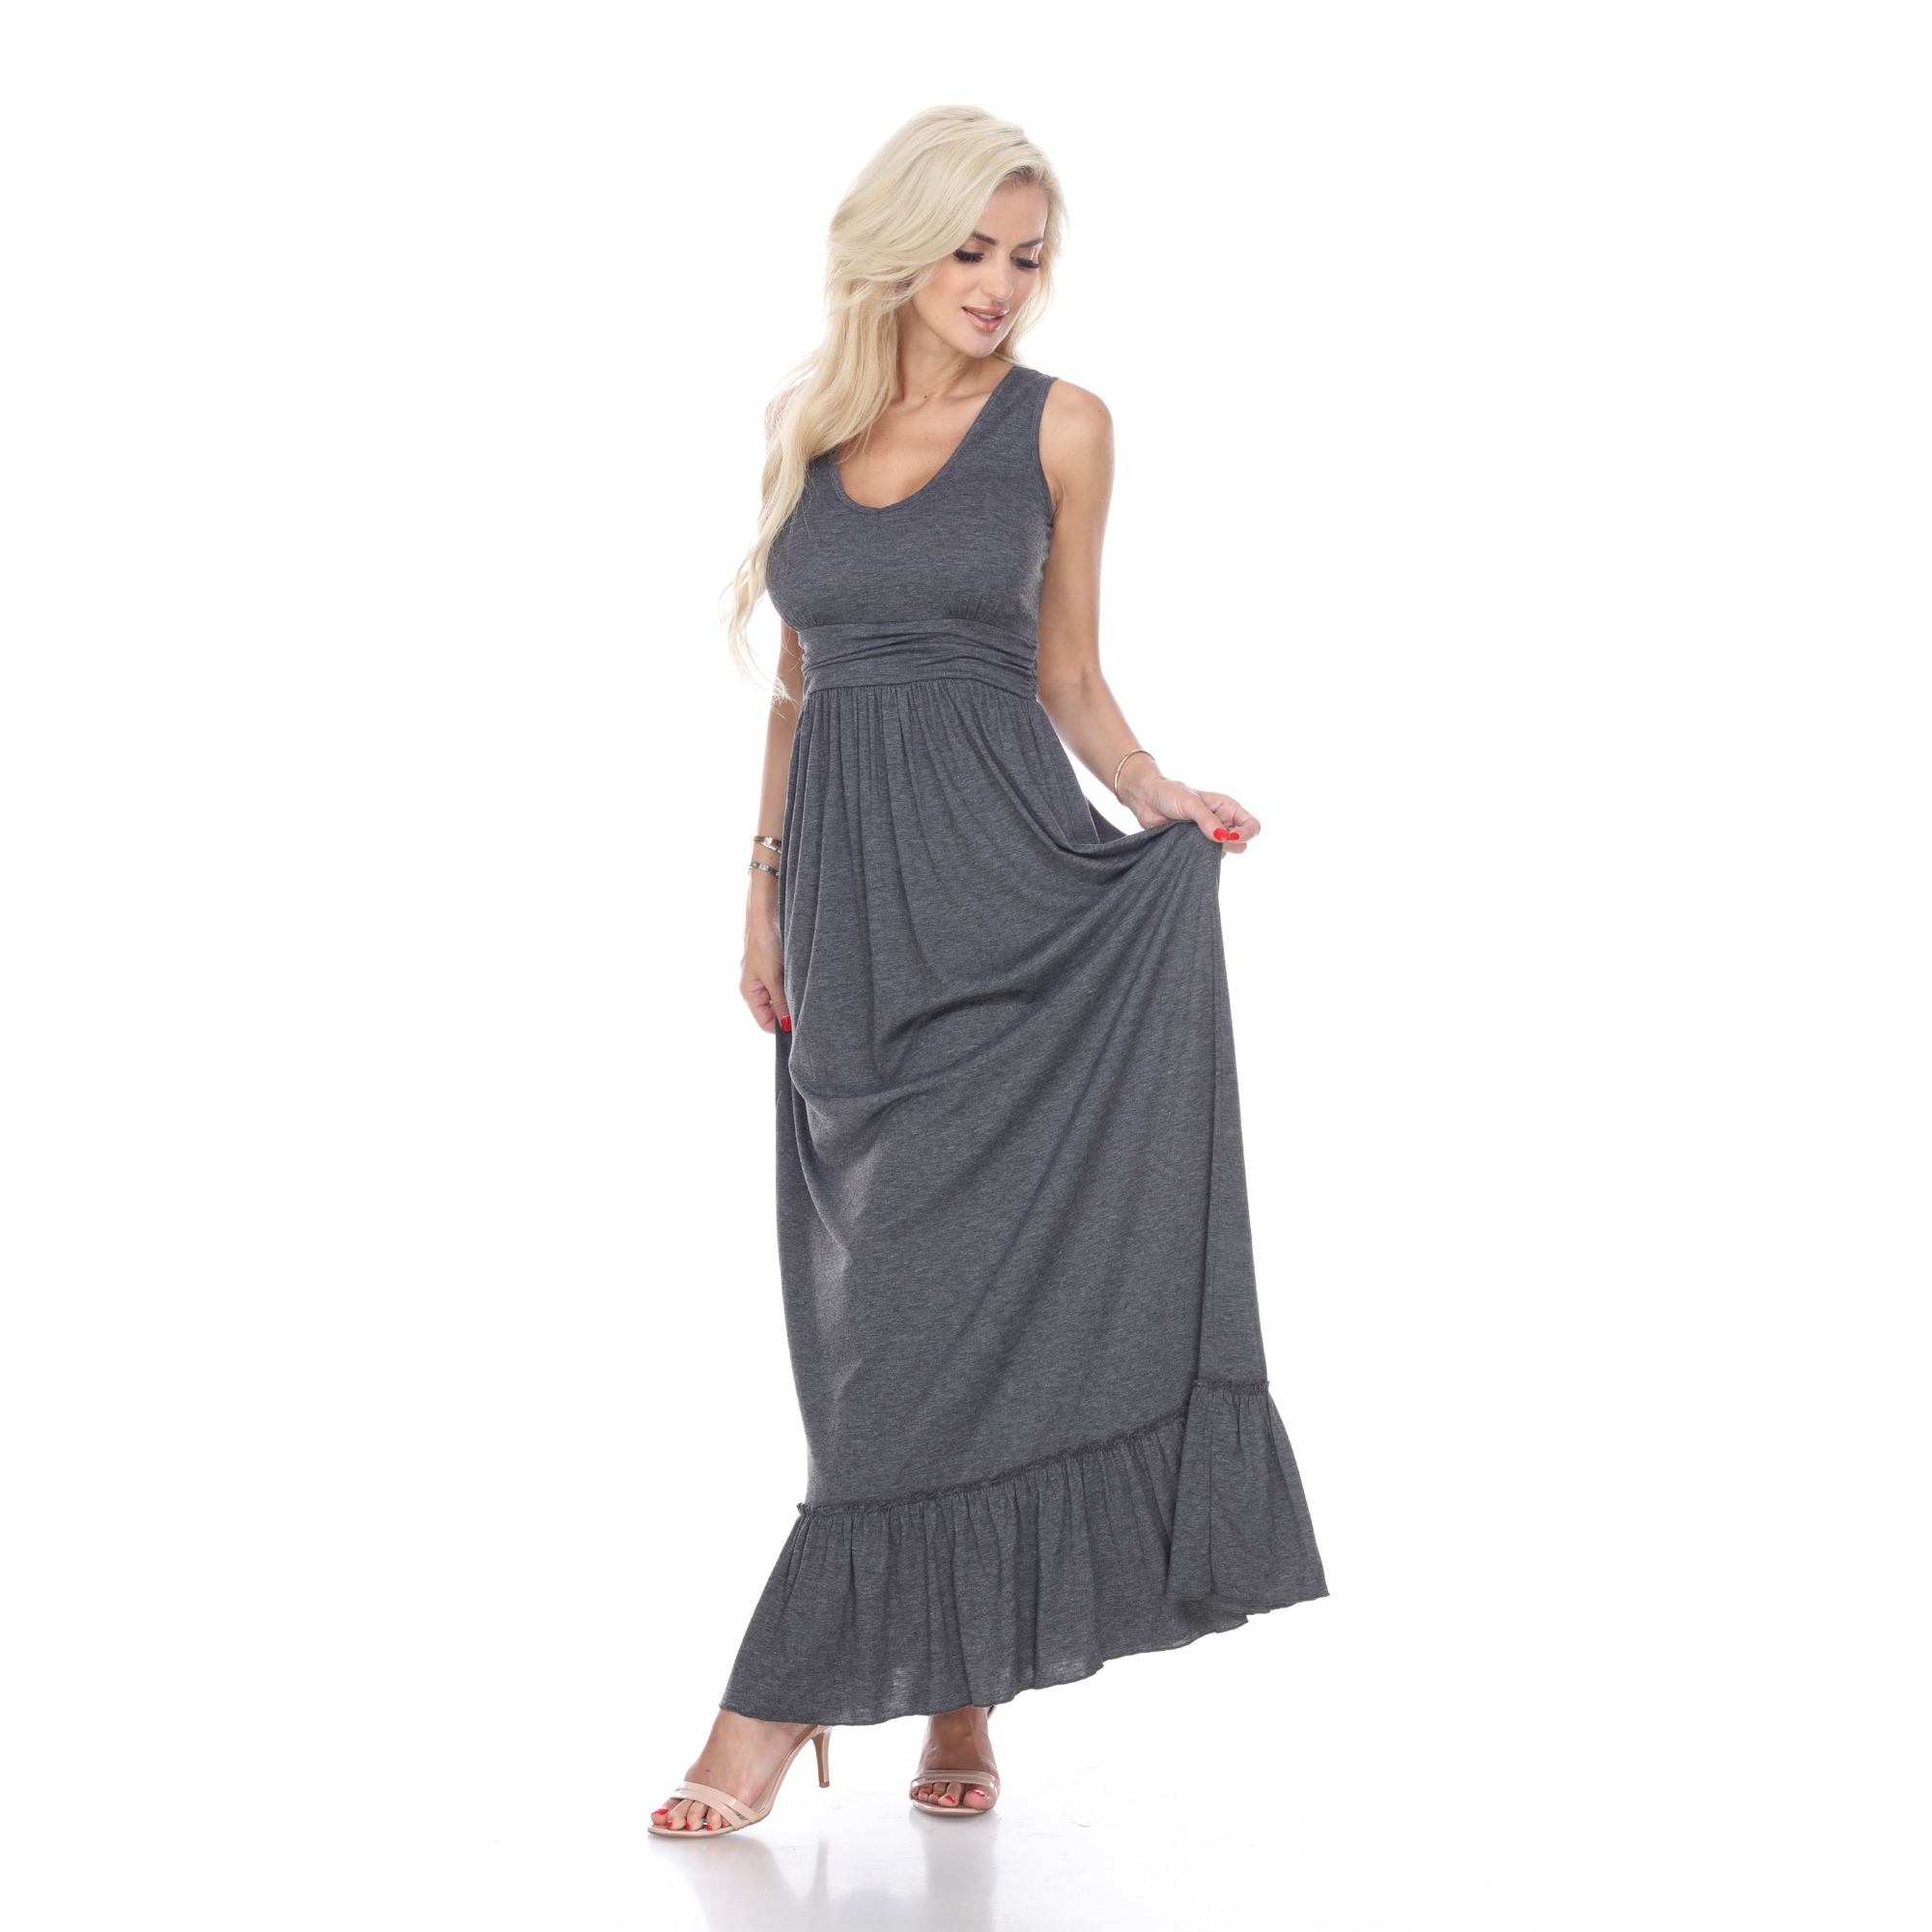 4080340b365c Shop White Mark Women's Medina Maxi Dress - Free Shipping On Orders Over  $45 - Overstock - 16413265